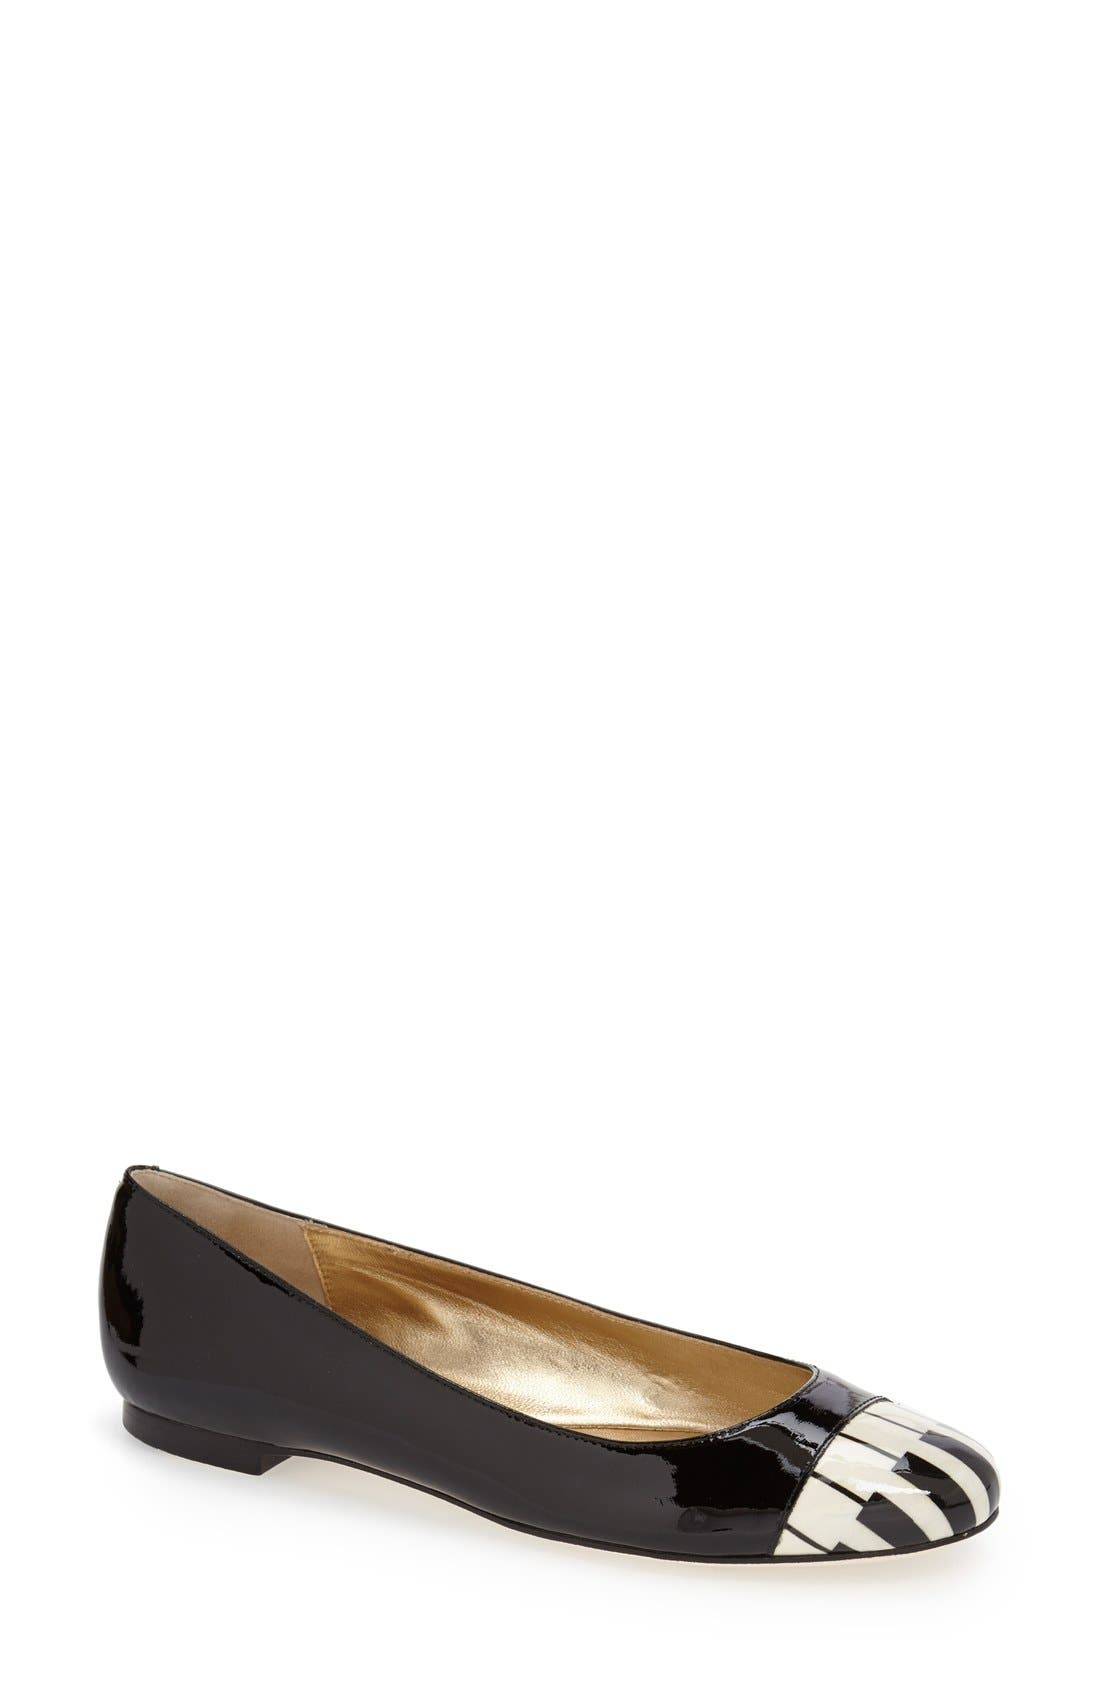 Main Image - kate spade new york 'jazz' flat (Women)